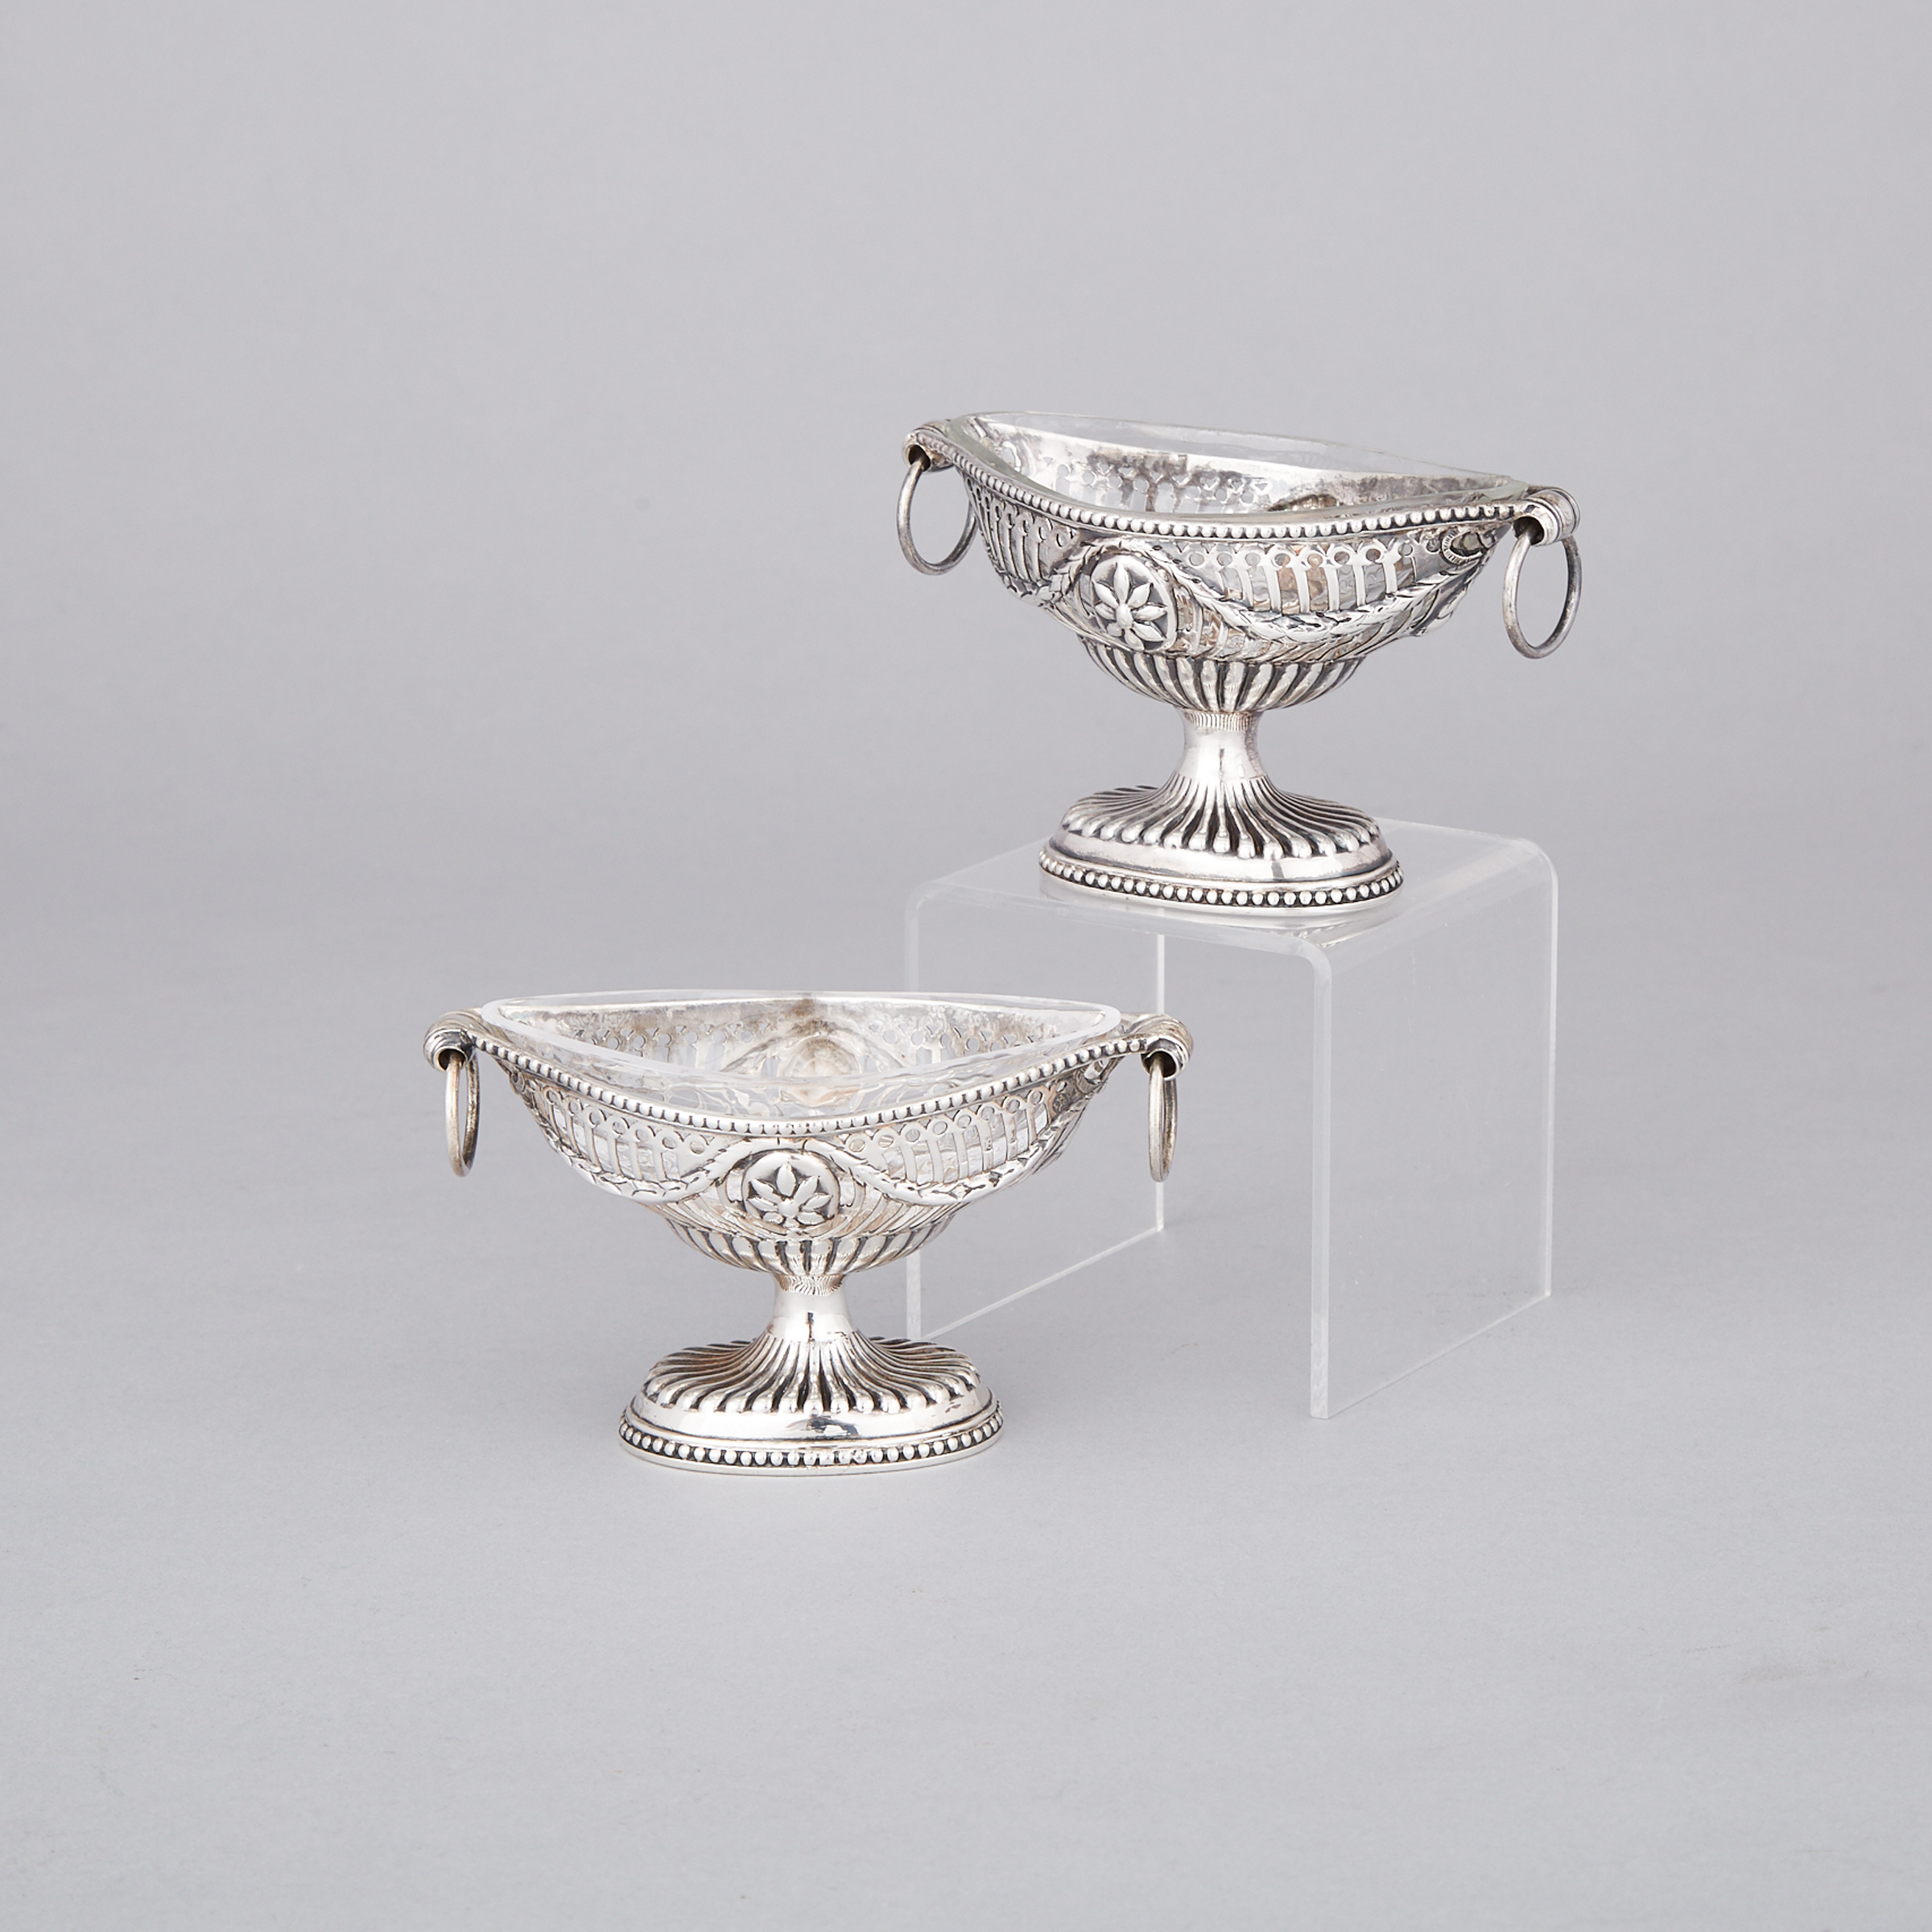 Pair of George III Scottish Silver Pierced Oval Salt Cellars, Patrick Robertson, Edinburgh, 1781